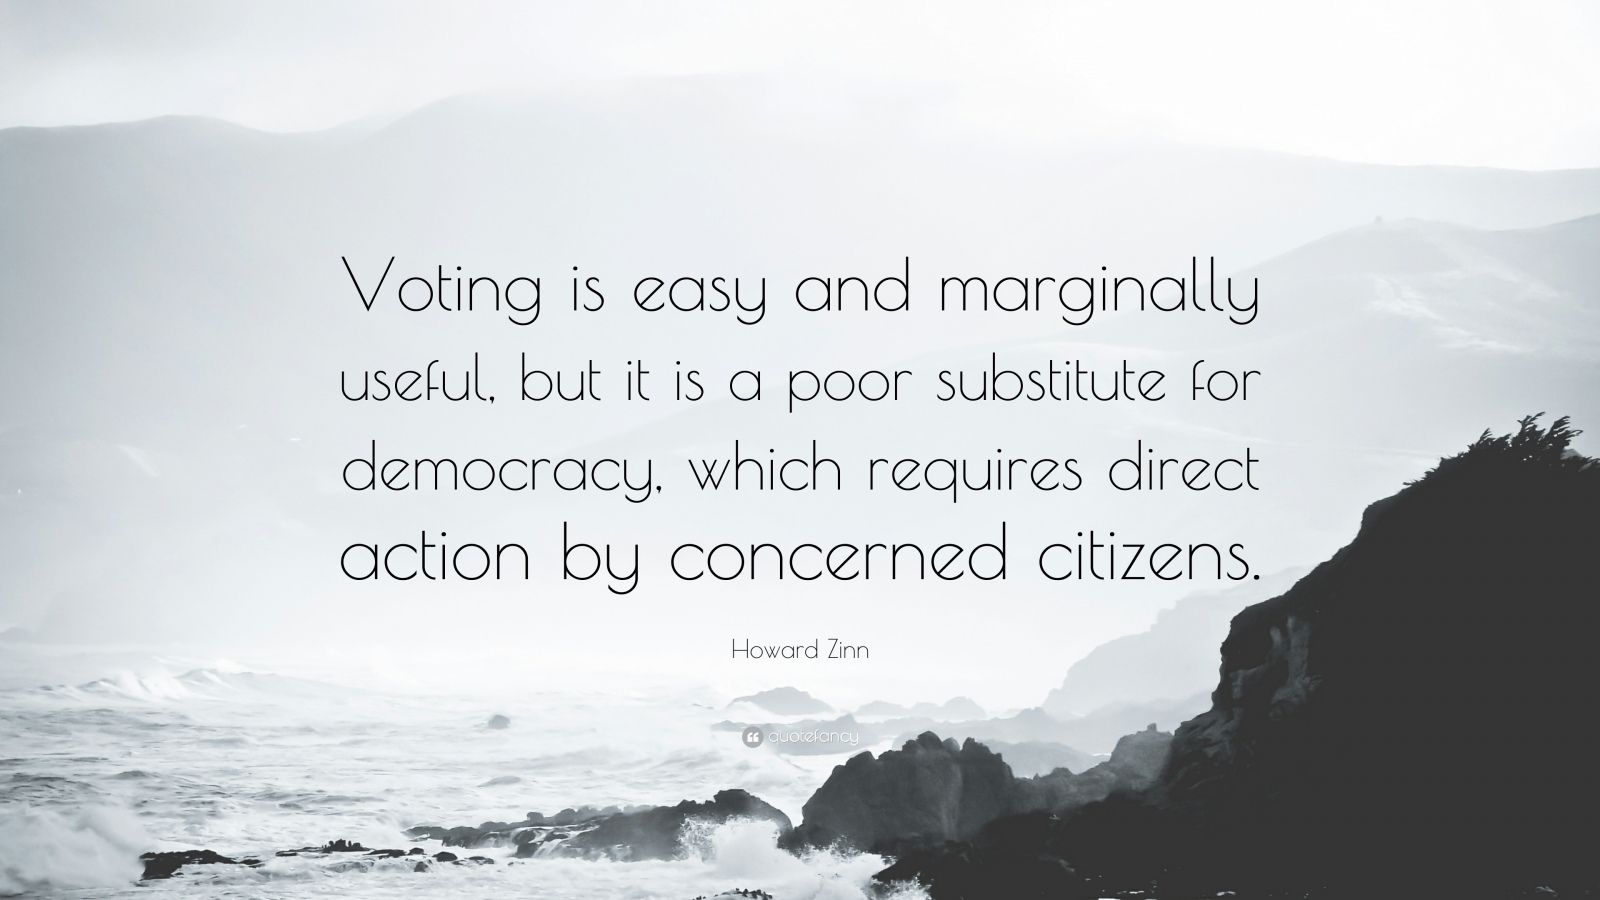 """Howard Zinn Quote: """"Voting is easy and marginally useful, but it is a poor substitute for democracy, which requires direct action by concerned citizens."""""""